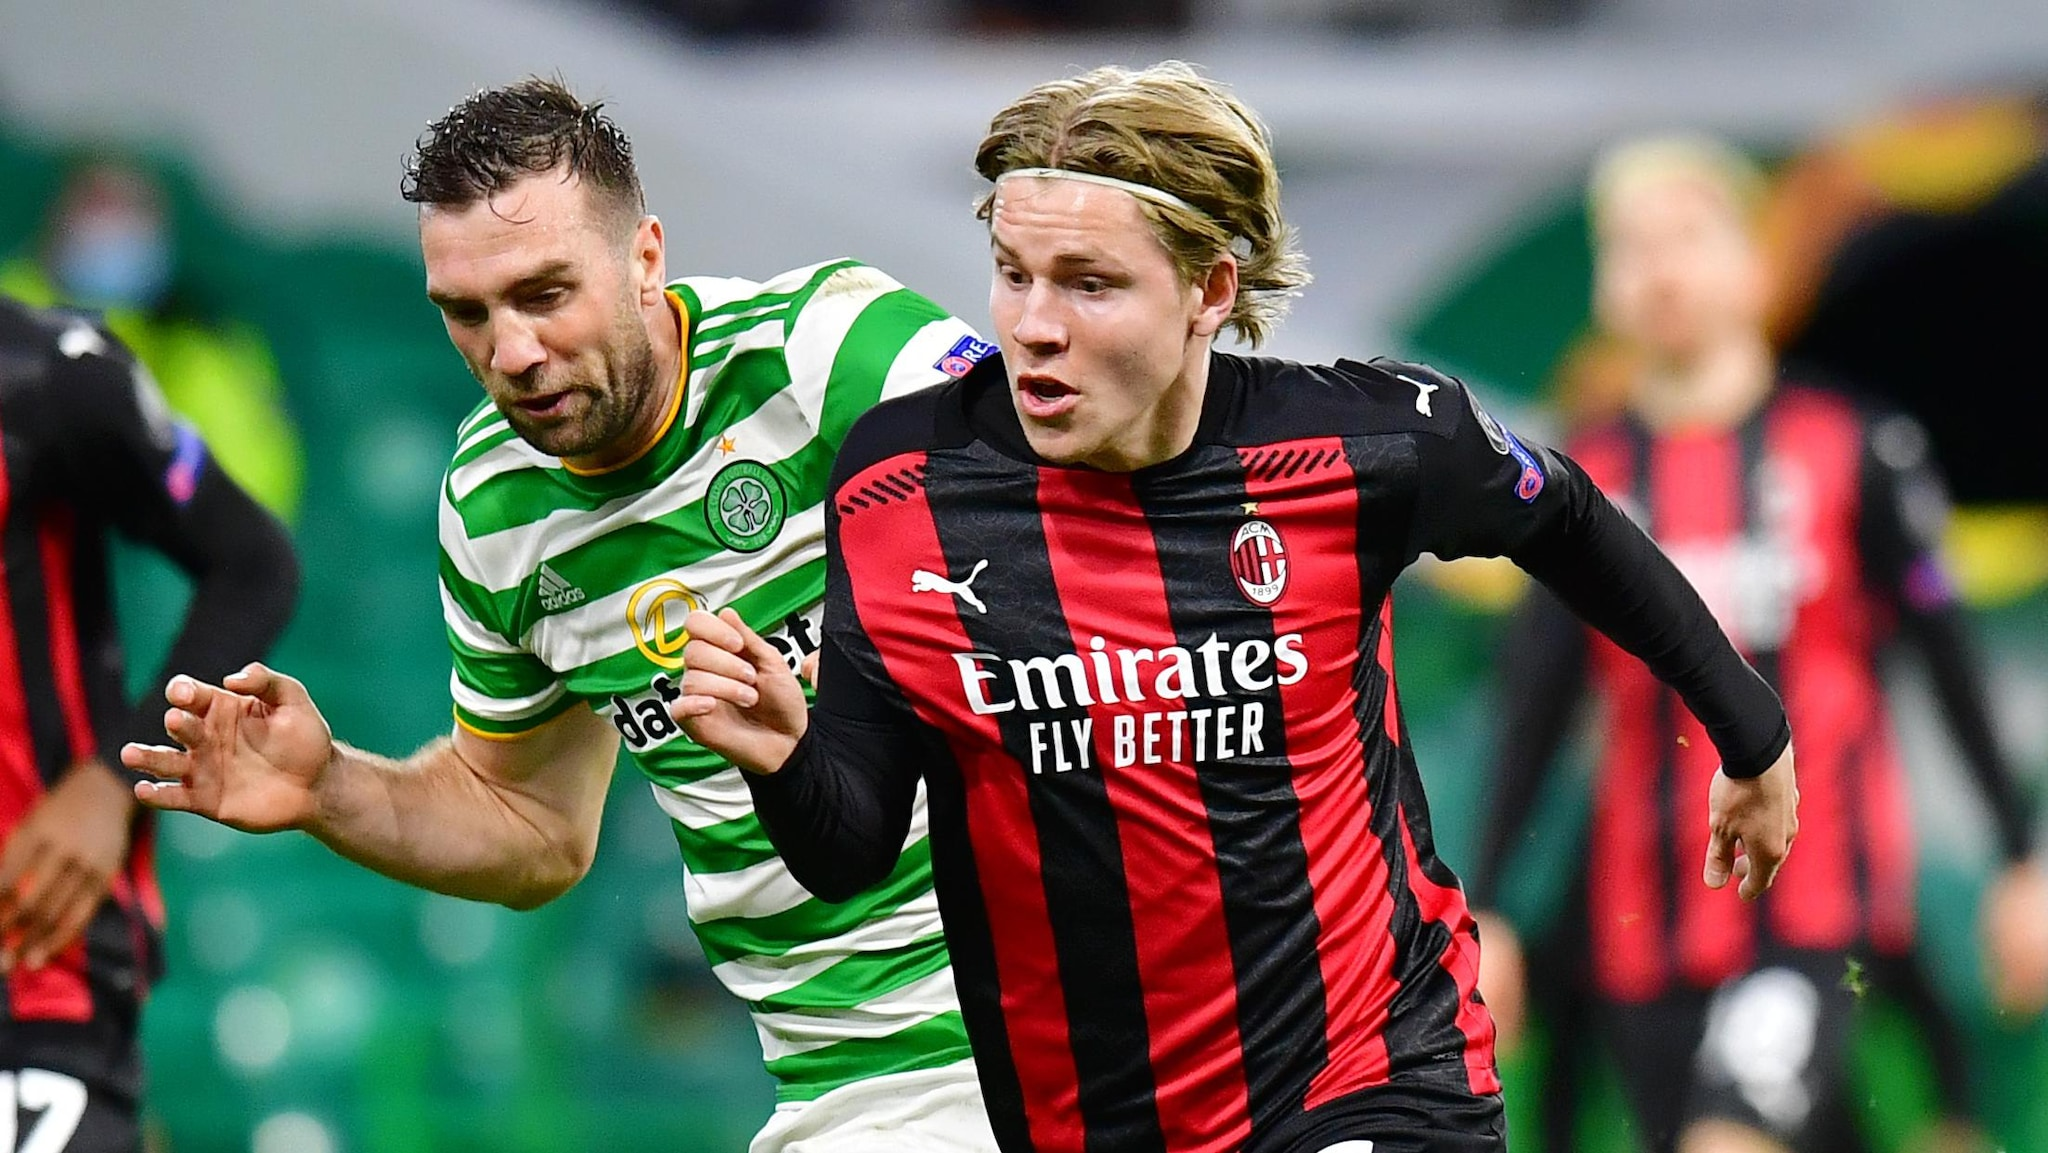 AC Milan vs Celtic Background: The Facts